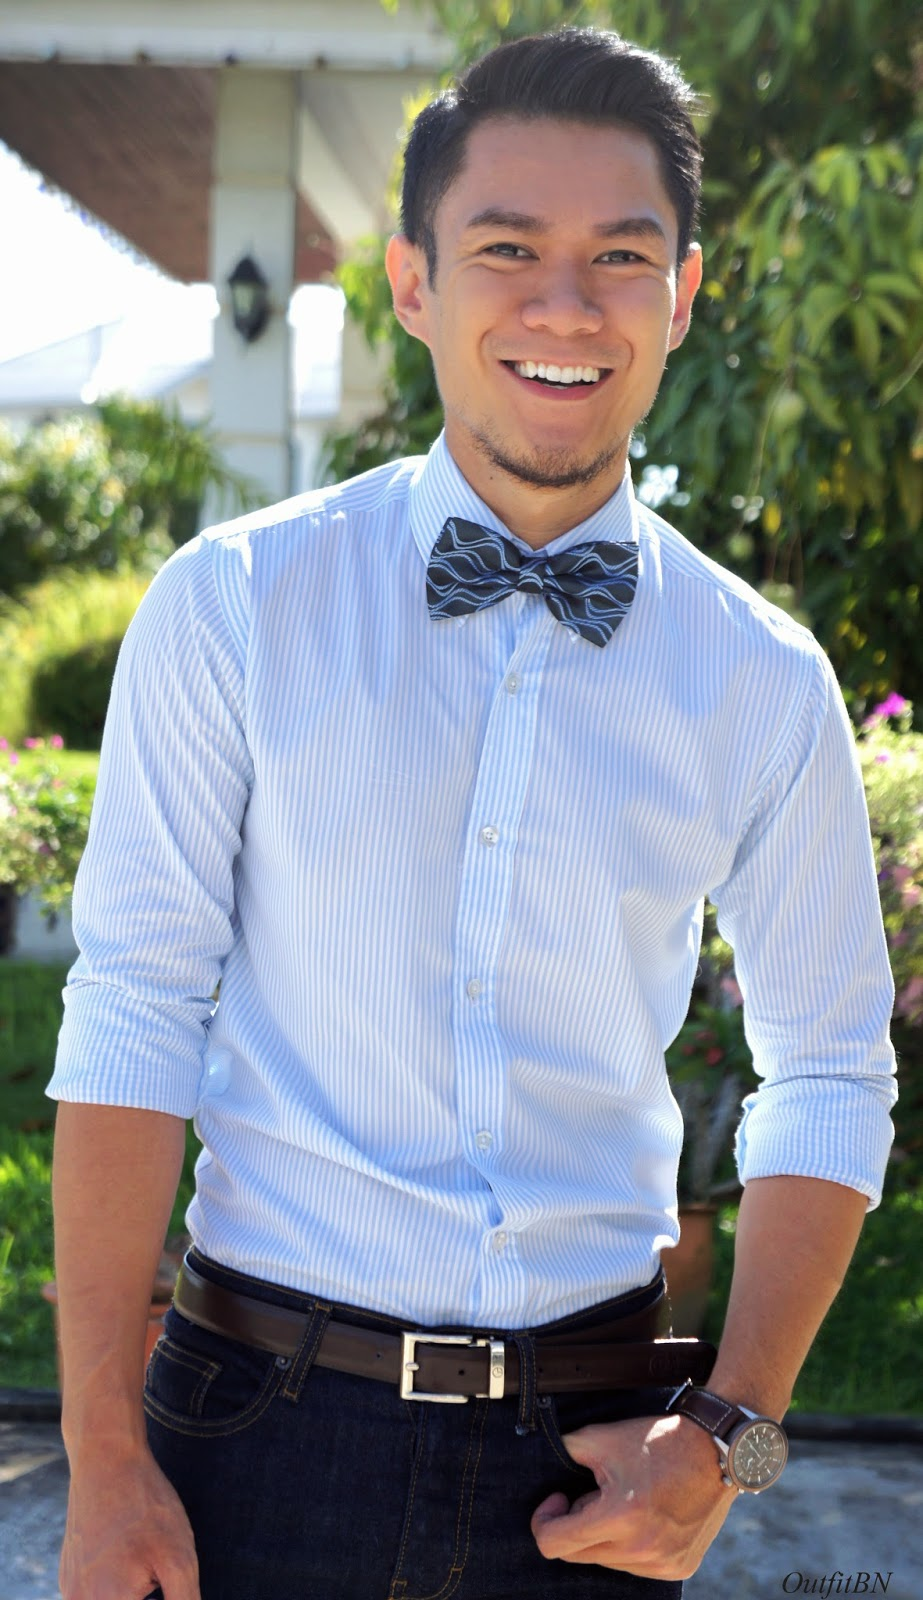 Outfit BN: Another bow tie look.